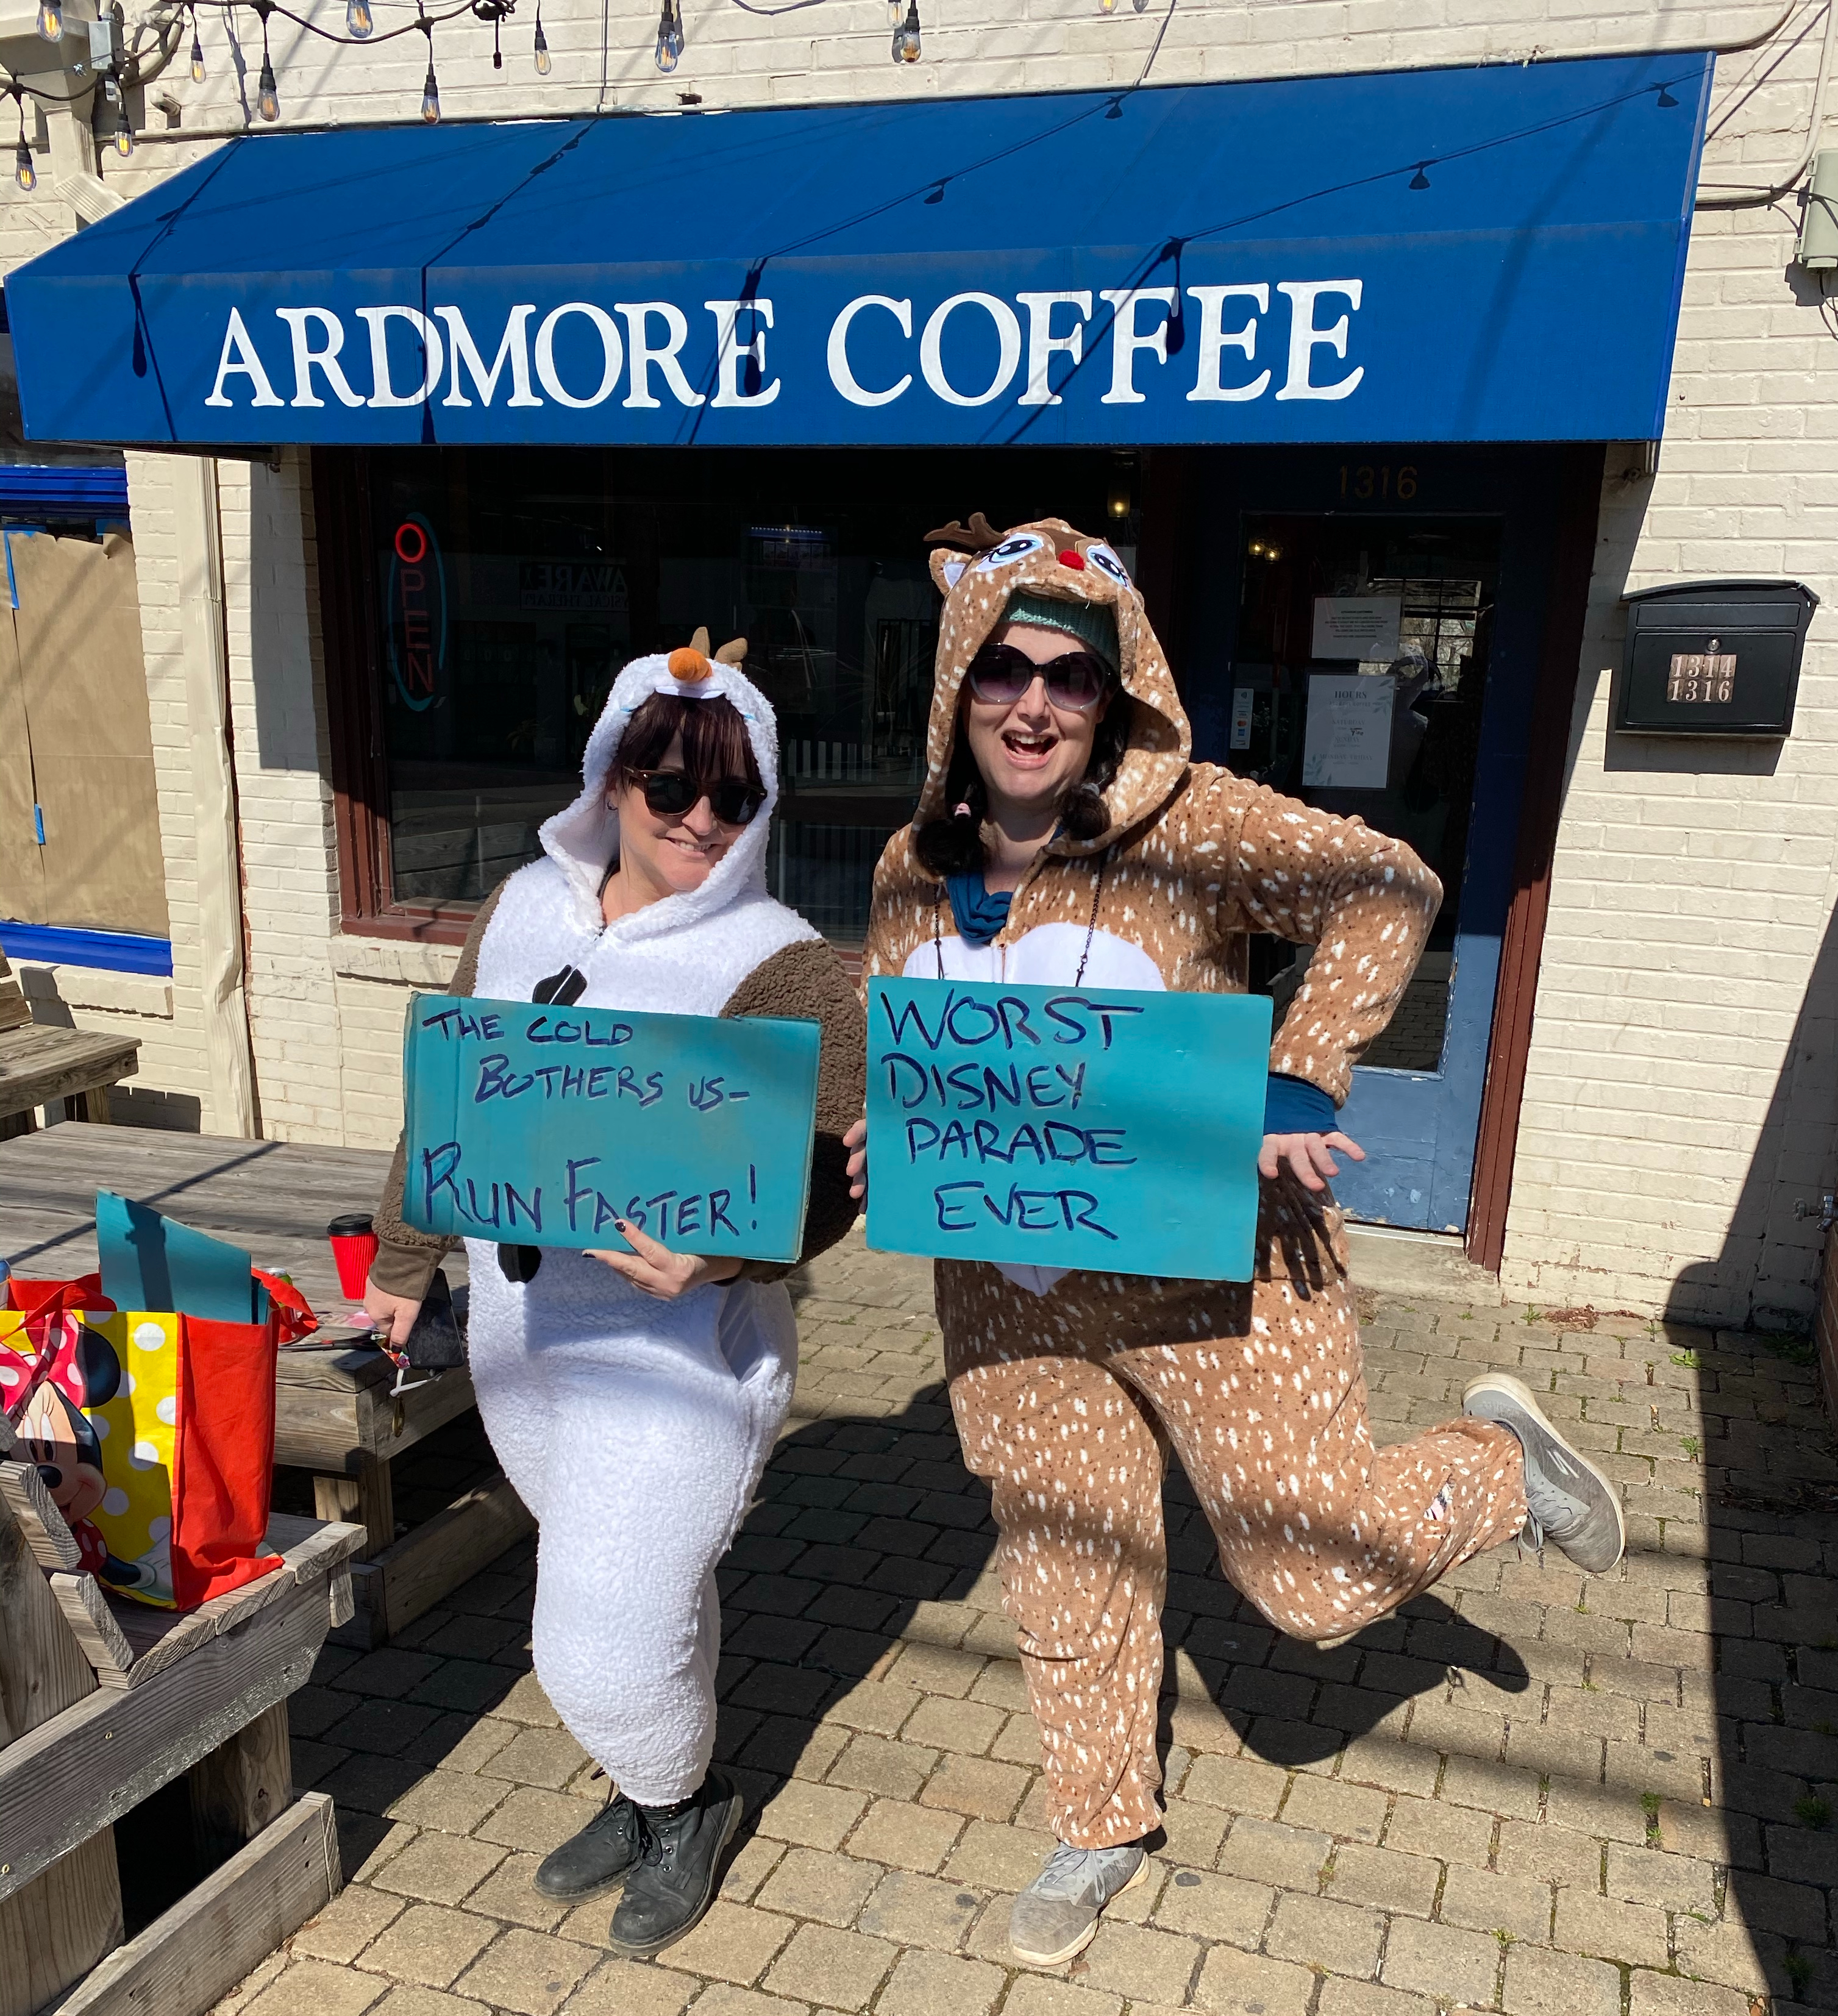 "Women in Olaf and reindeer onesies outside a coffee shop. Olaf holds a sign saying ""the cold bothers us, run faster"", the deer's sign says ""worst Disney parade ever""."